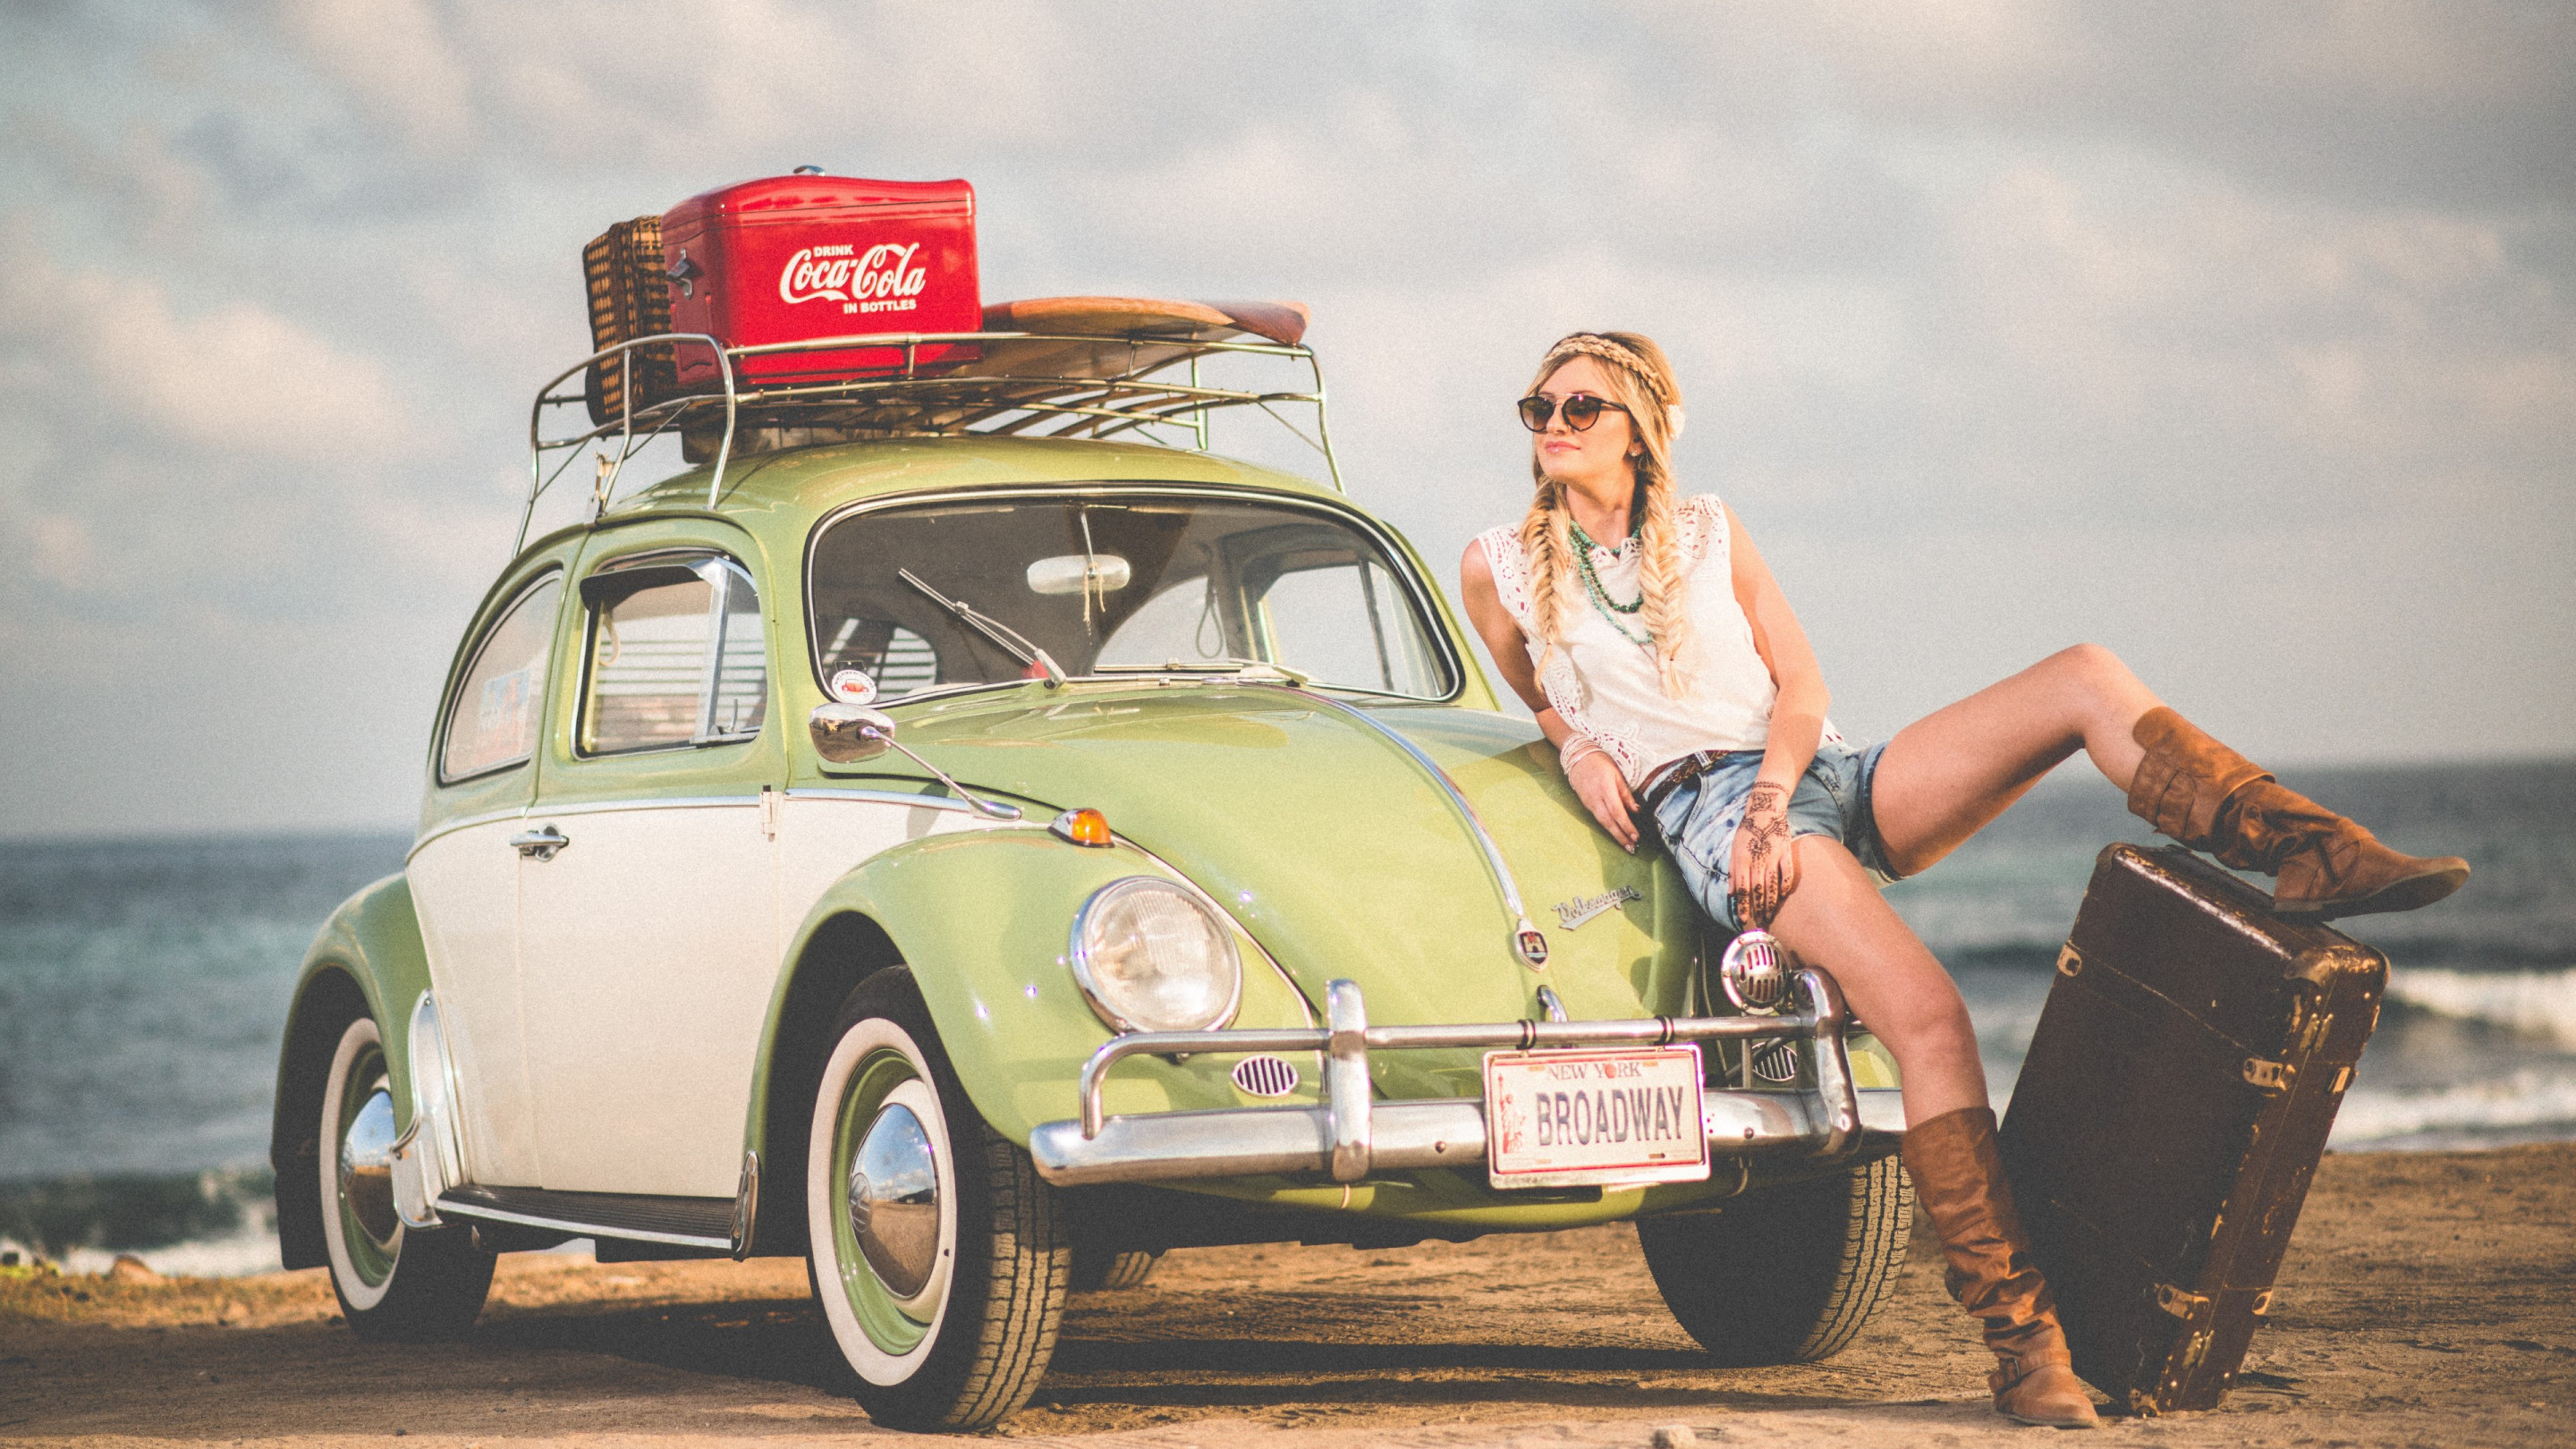 VW Beetle, blonde girl, model, travel wallpaper 2880x1620